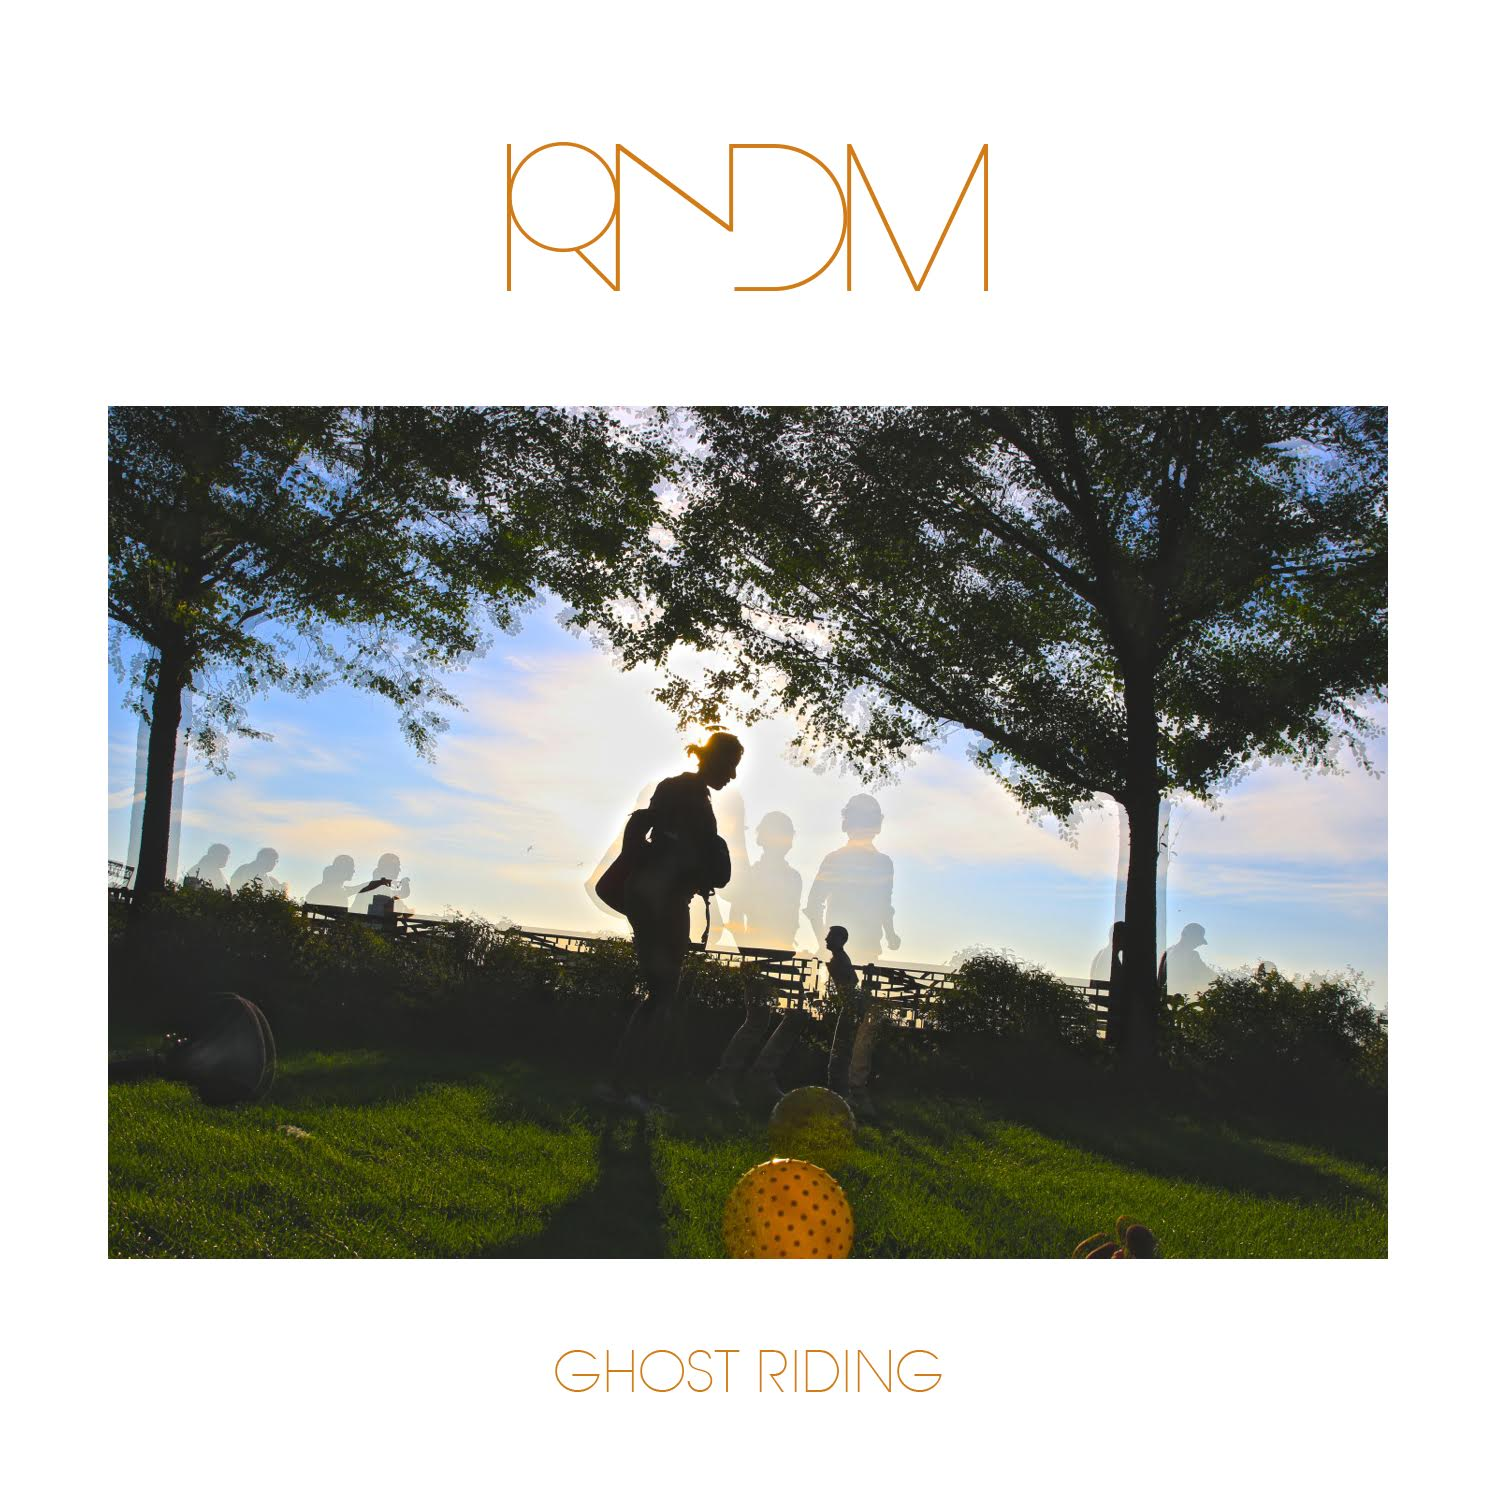 Ghost Riding